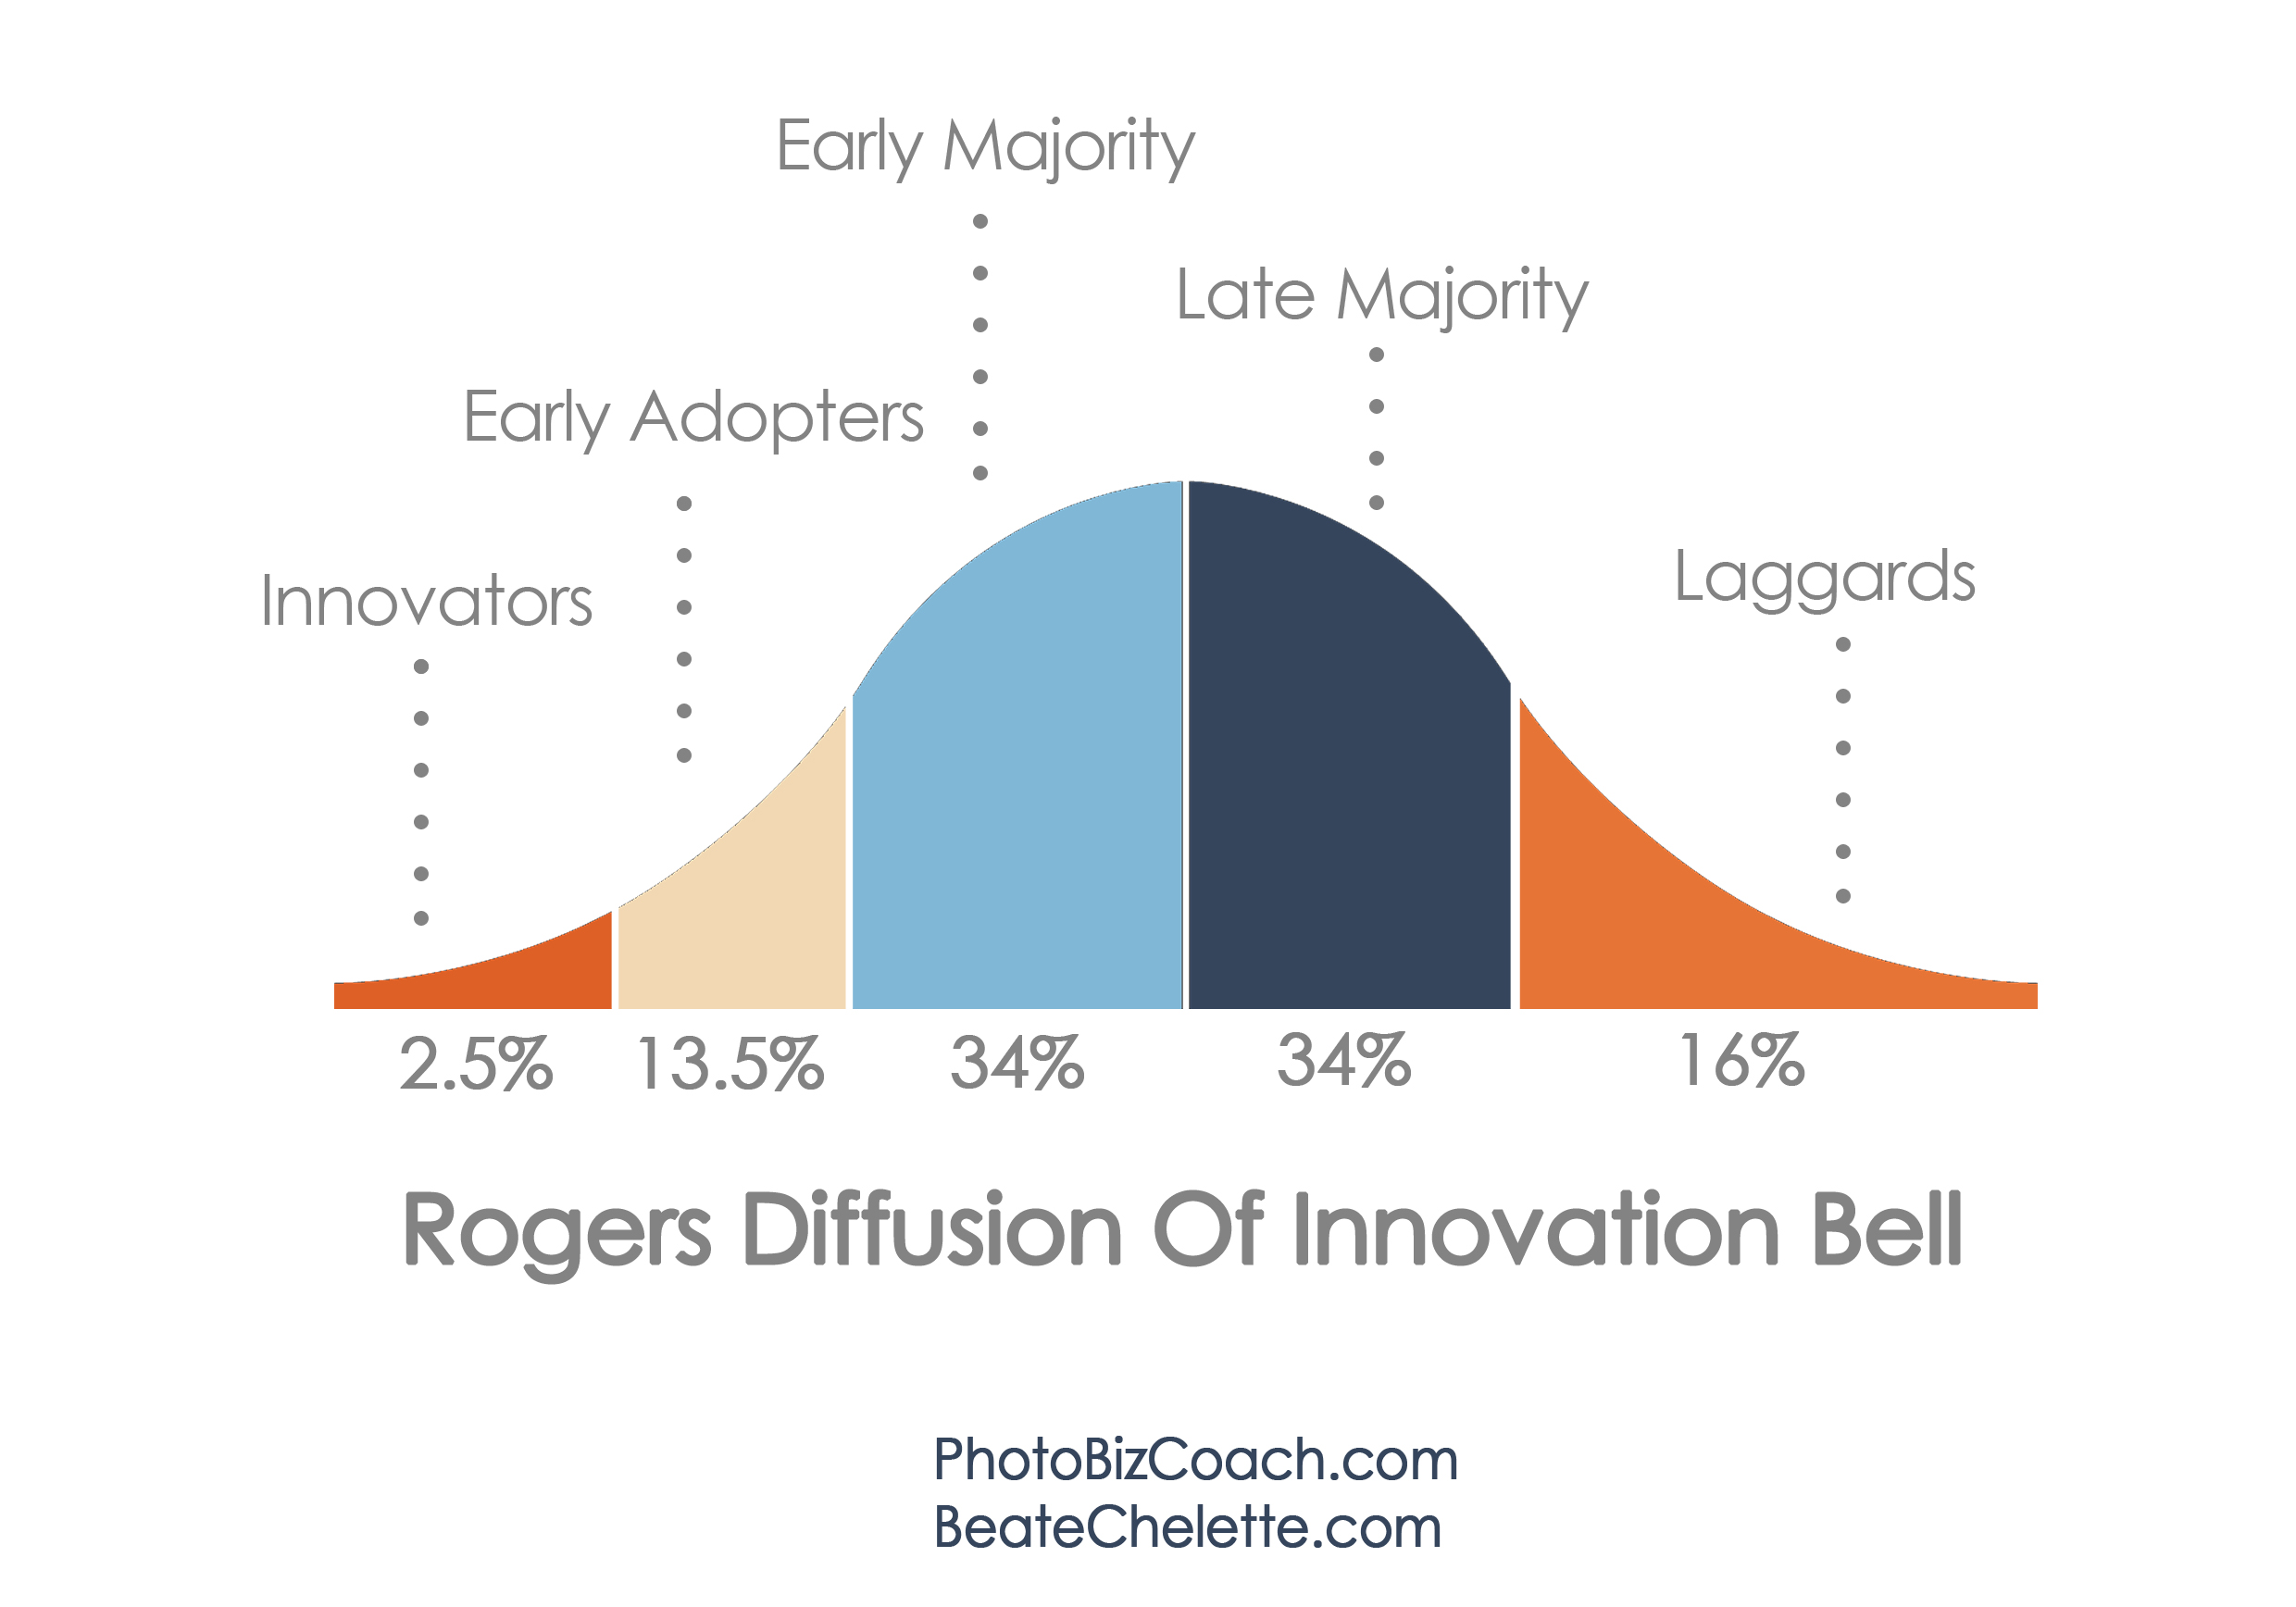 Diffusion of Innovation Rogers